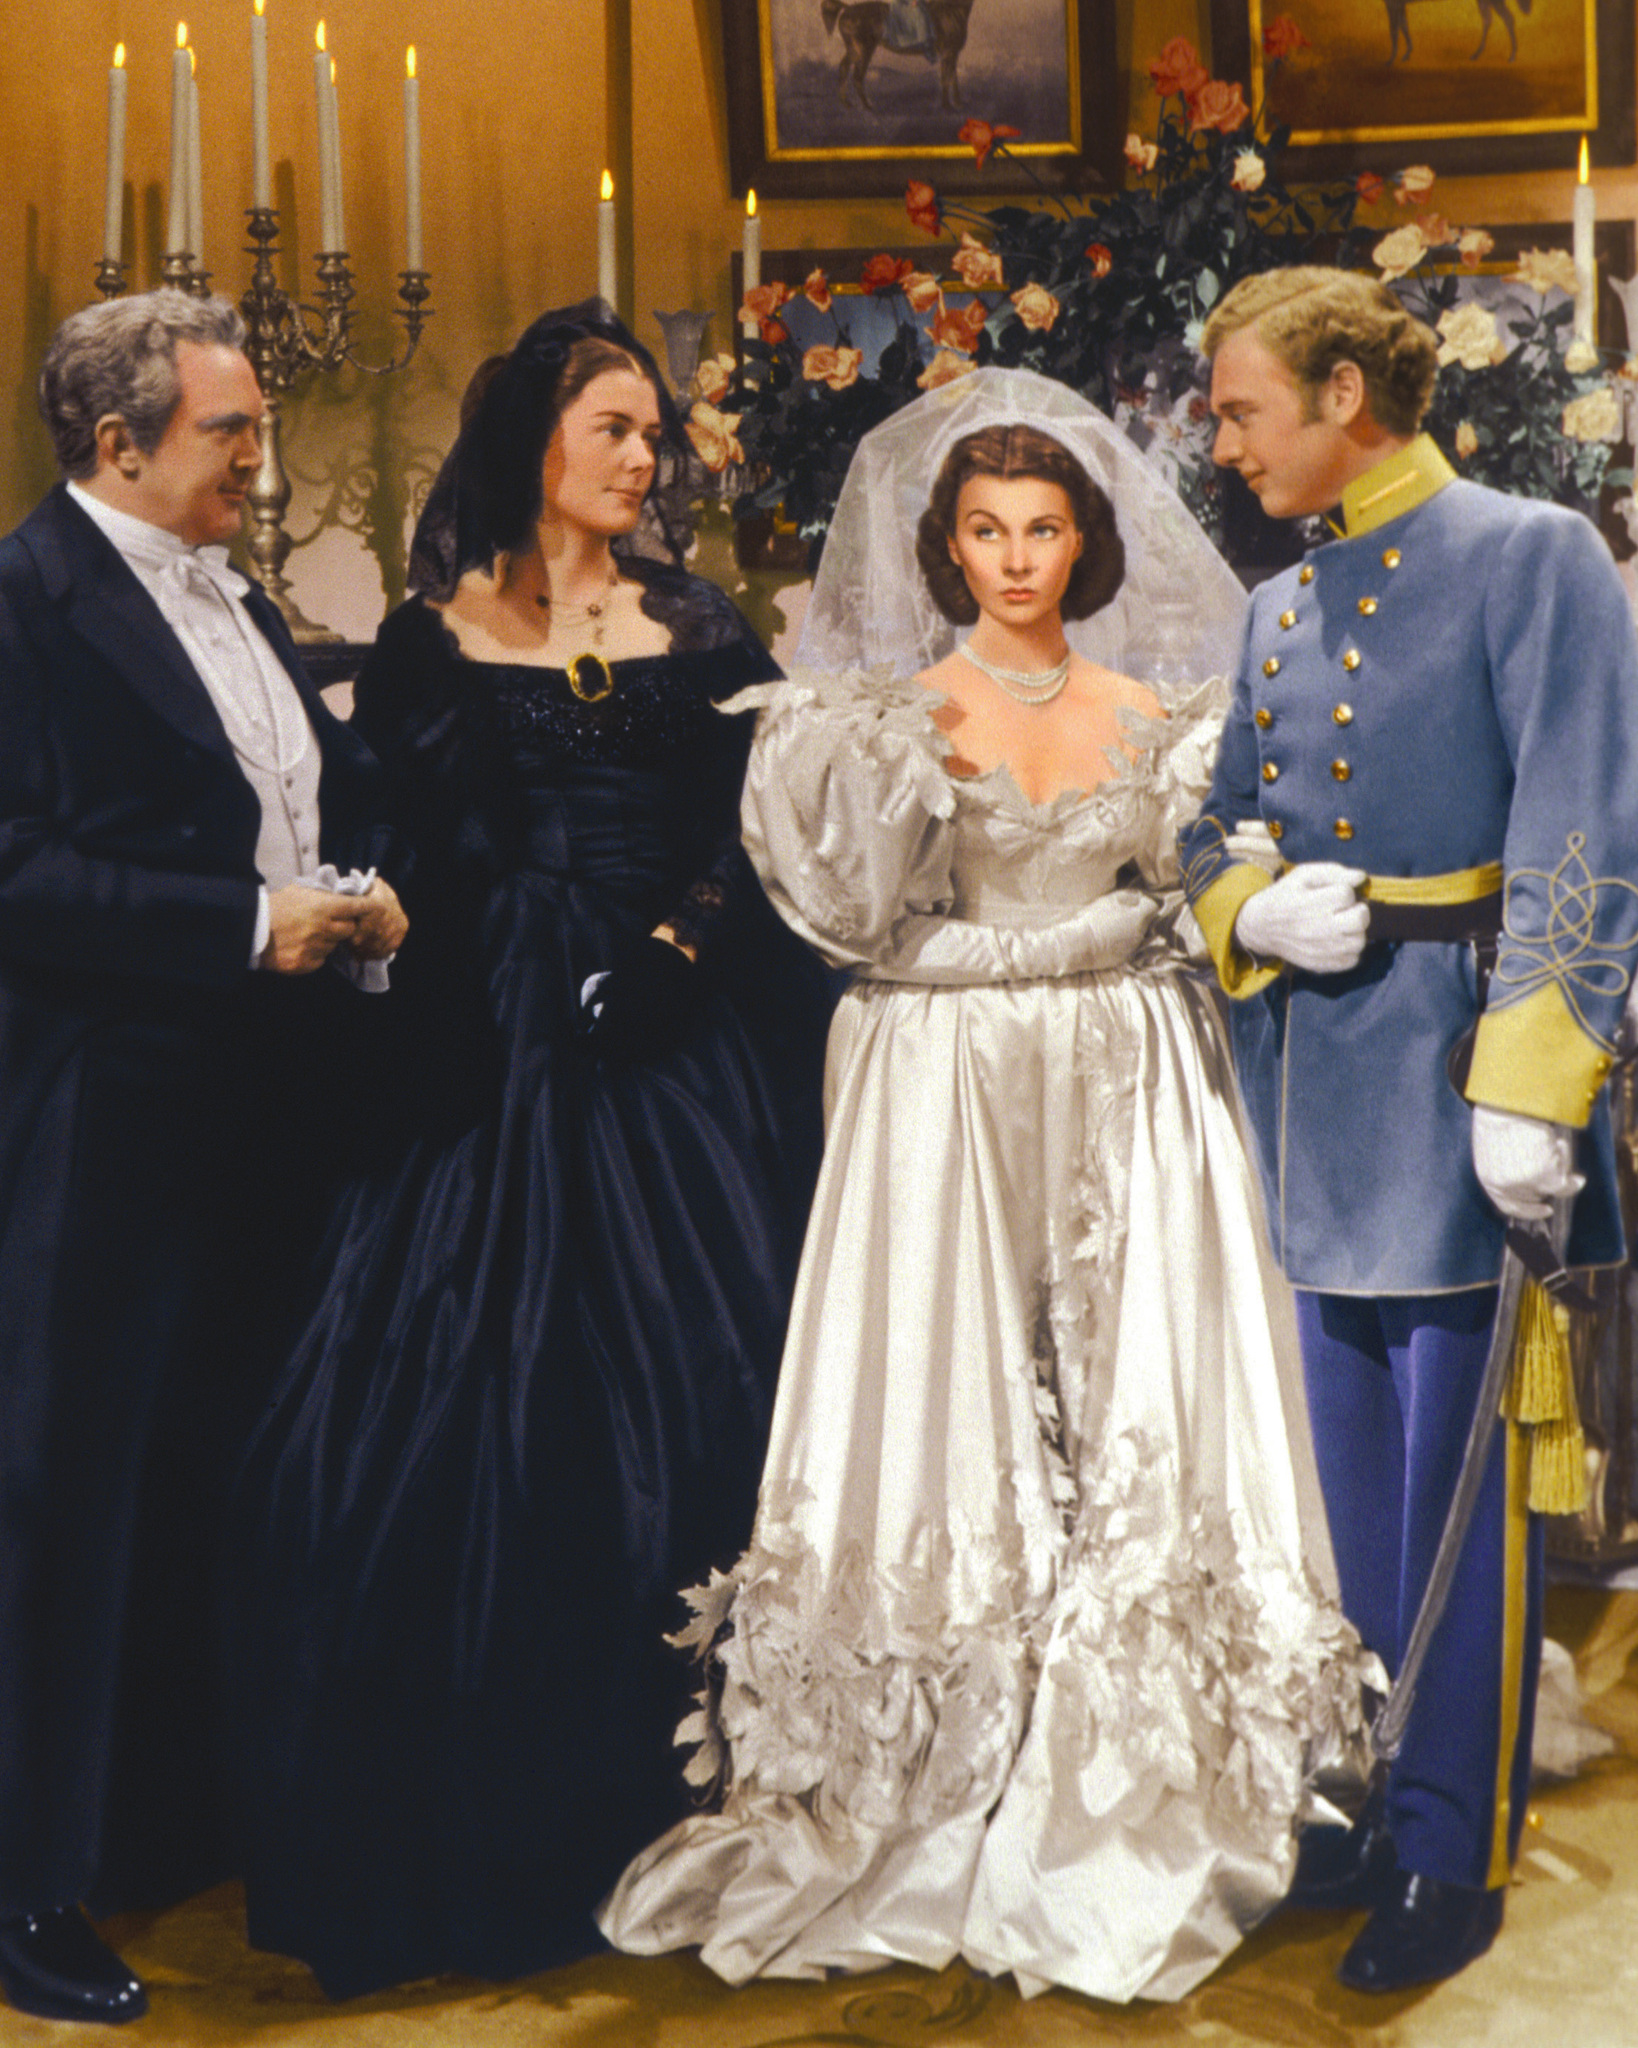 Vivien Leigh, Rand Brooks, Thomas Mitchell, and Barbara O'Neil in Gone with the Wind (1939)